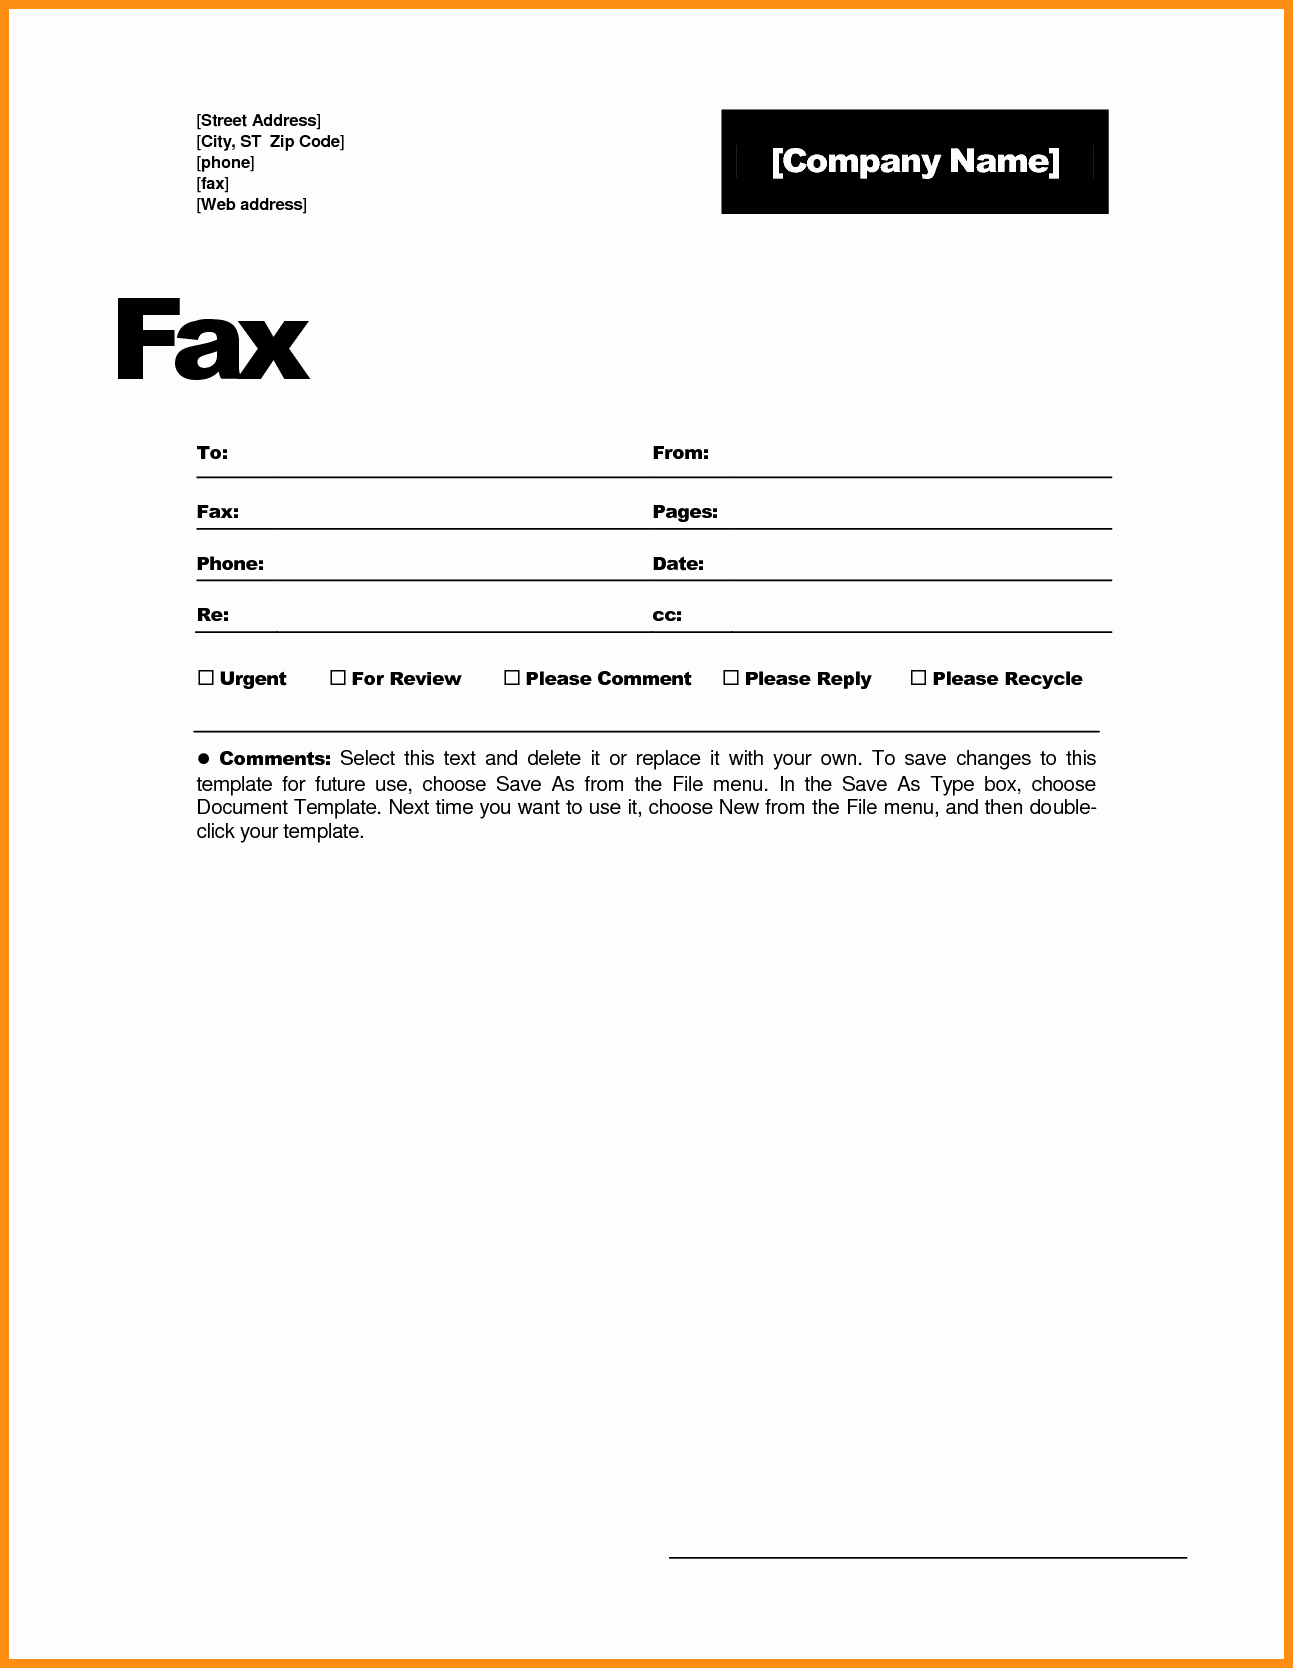 Word Fax Cover Sheet Templates Beautiful 6 Free Fax Cover Sheet Template Word